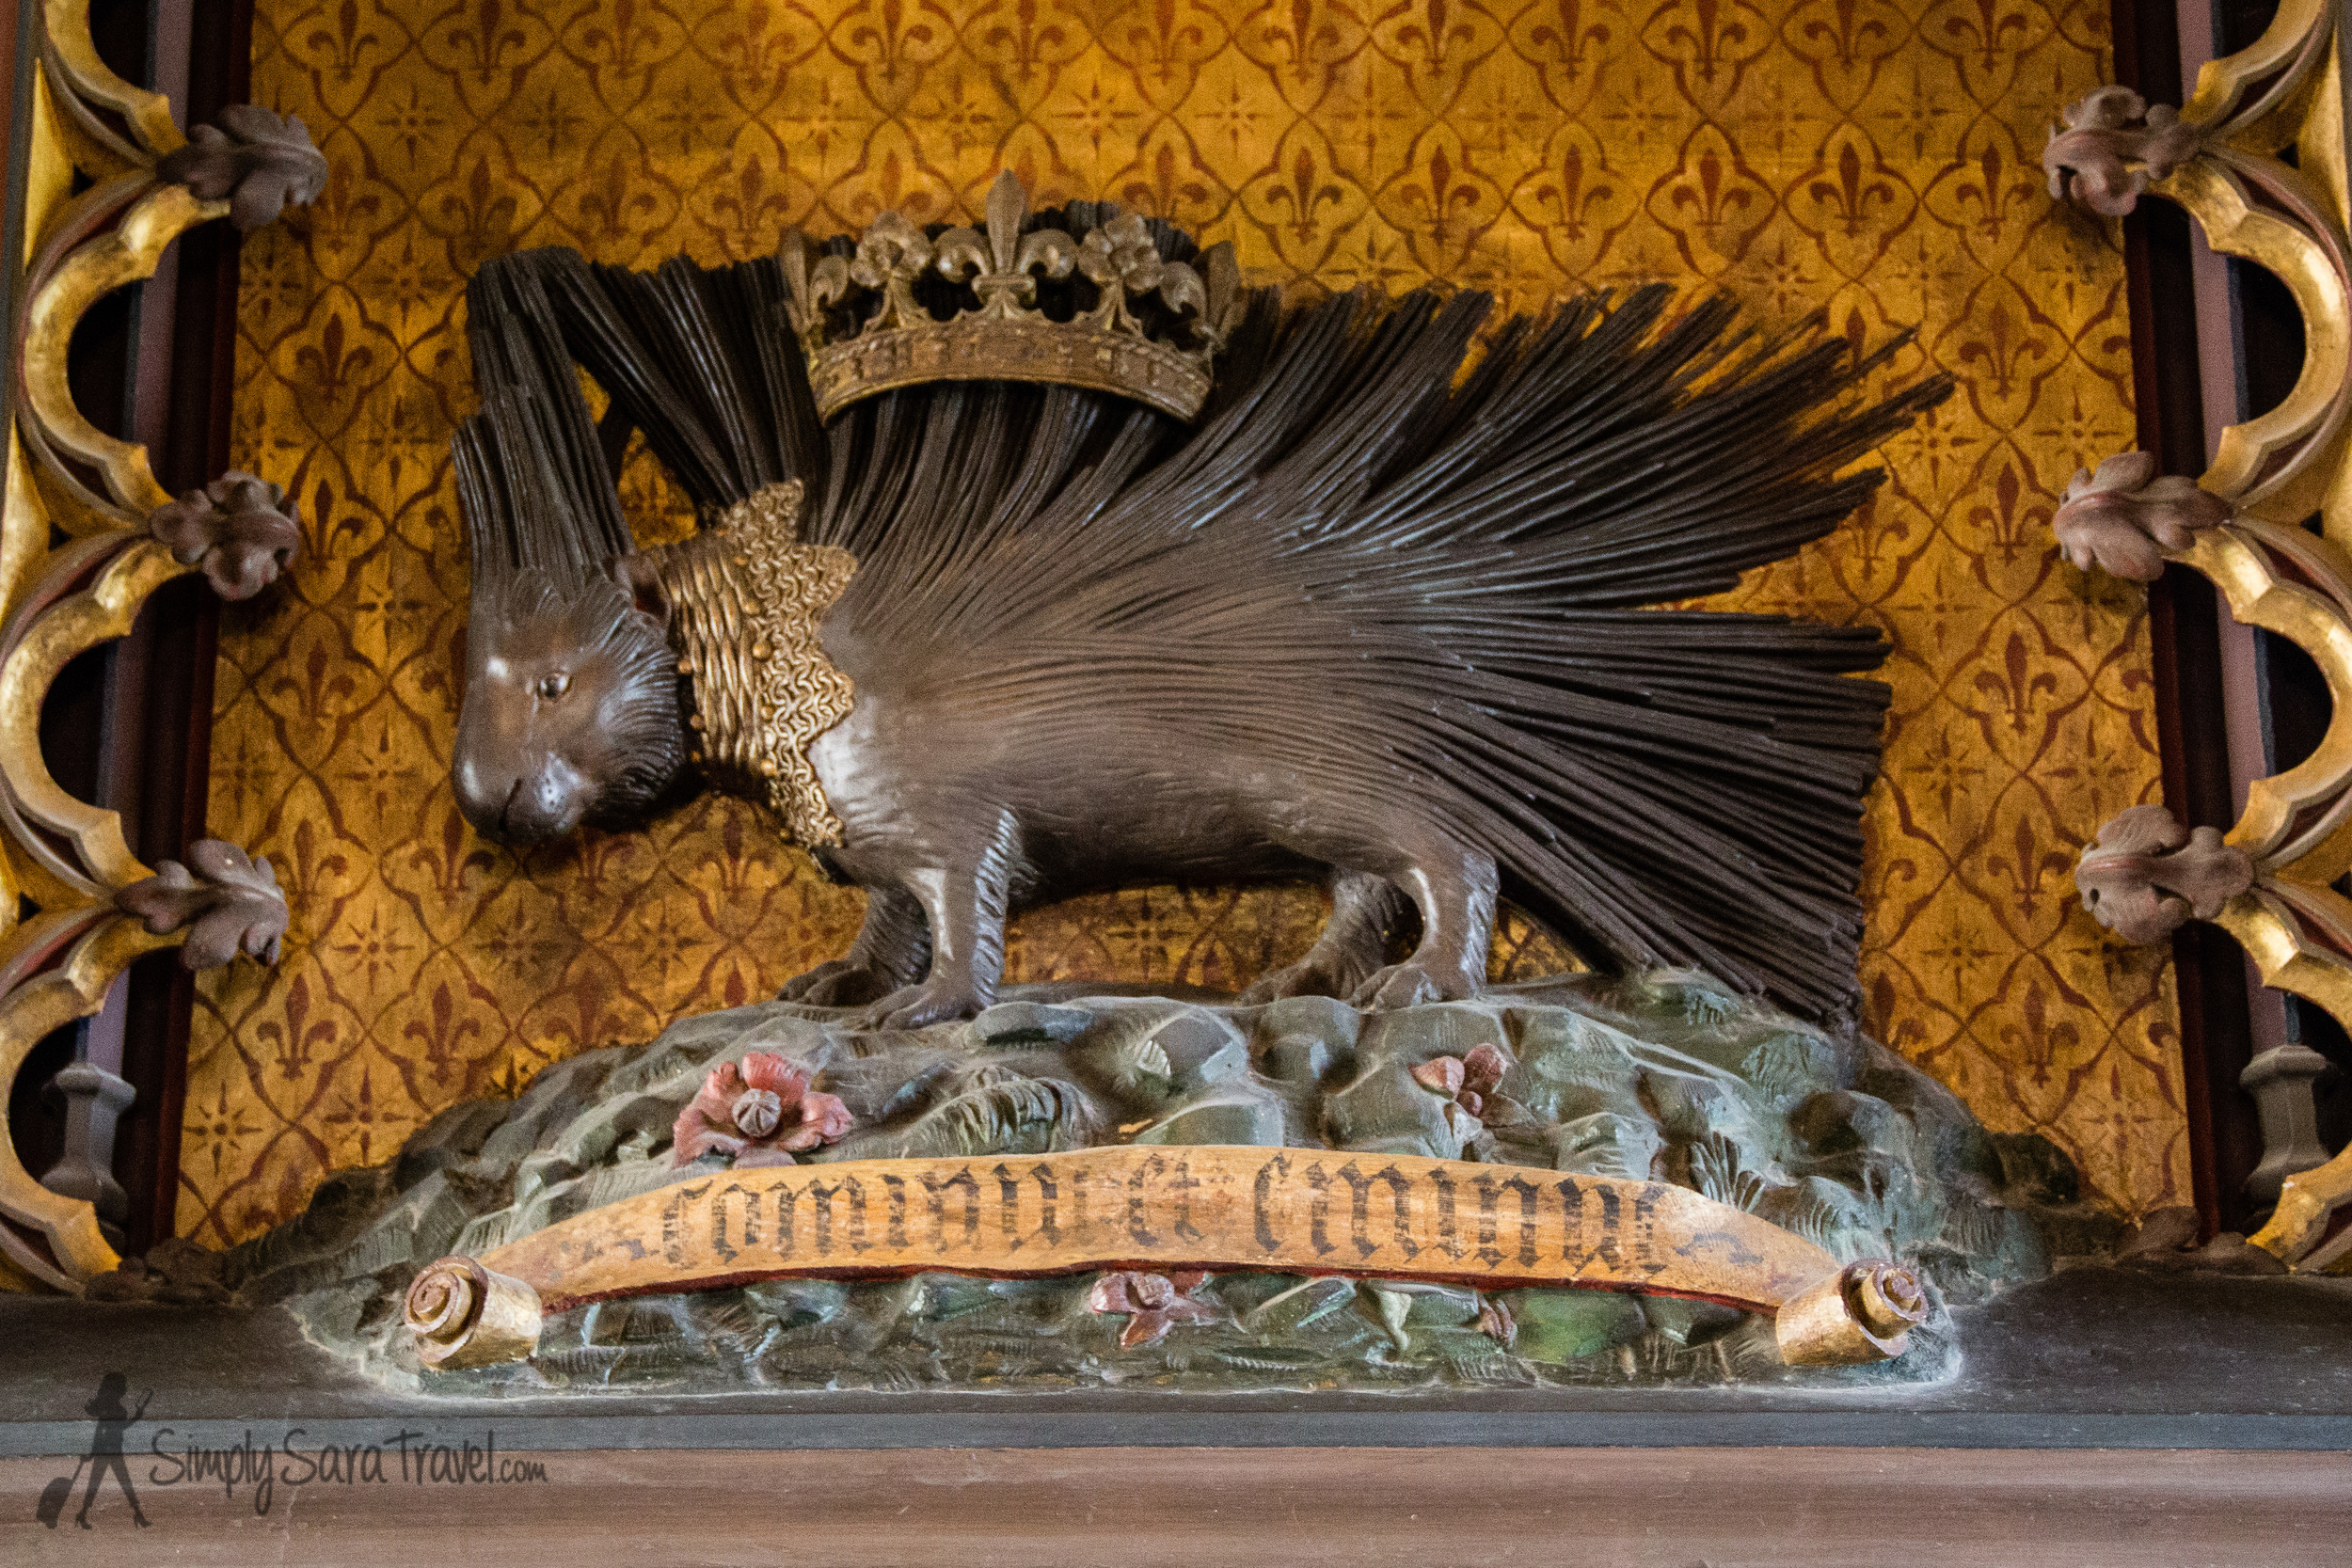 A crowned porcupine, a symbol of King Louis VII